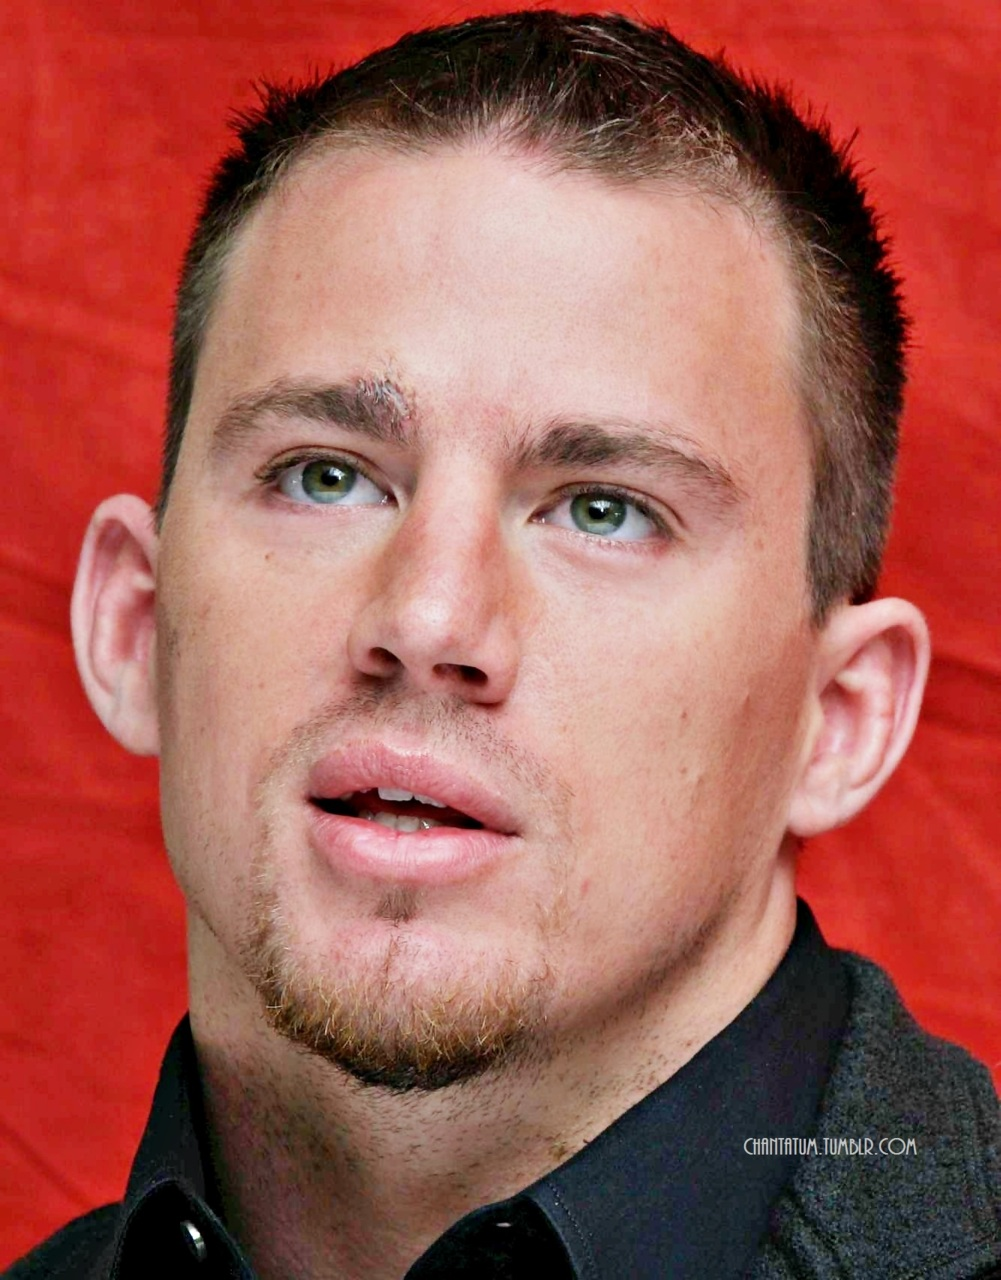 Channing Tatum Pictures : Photo-Channing Tatum Pictures : Photo-13